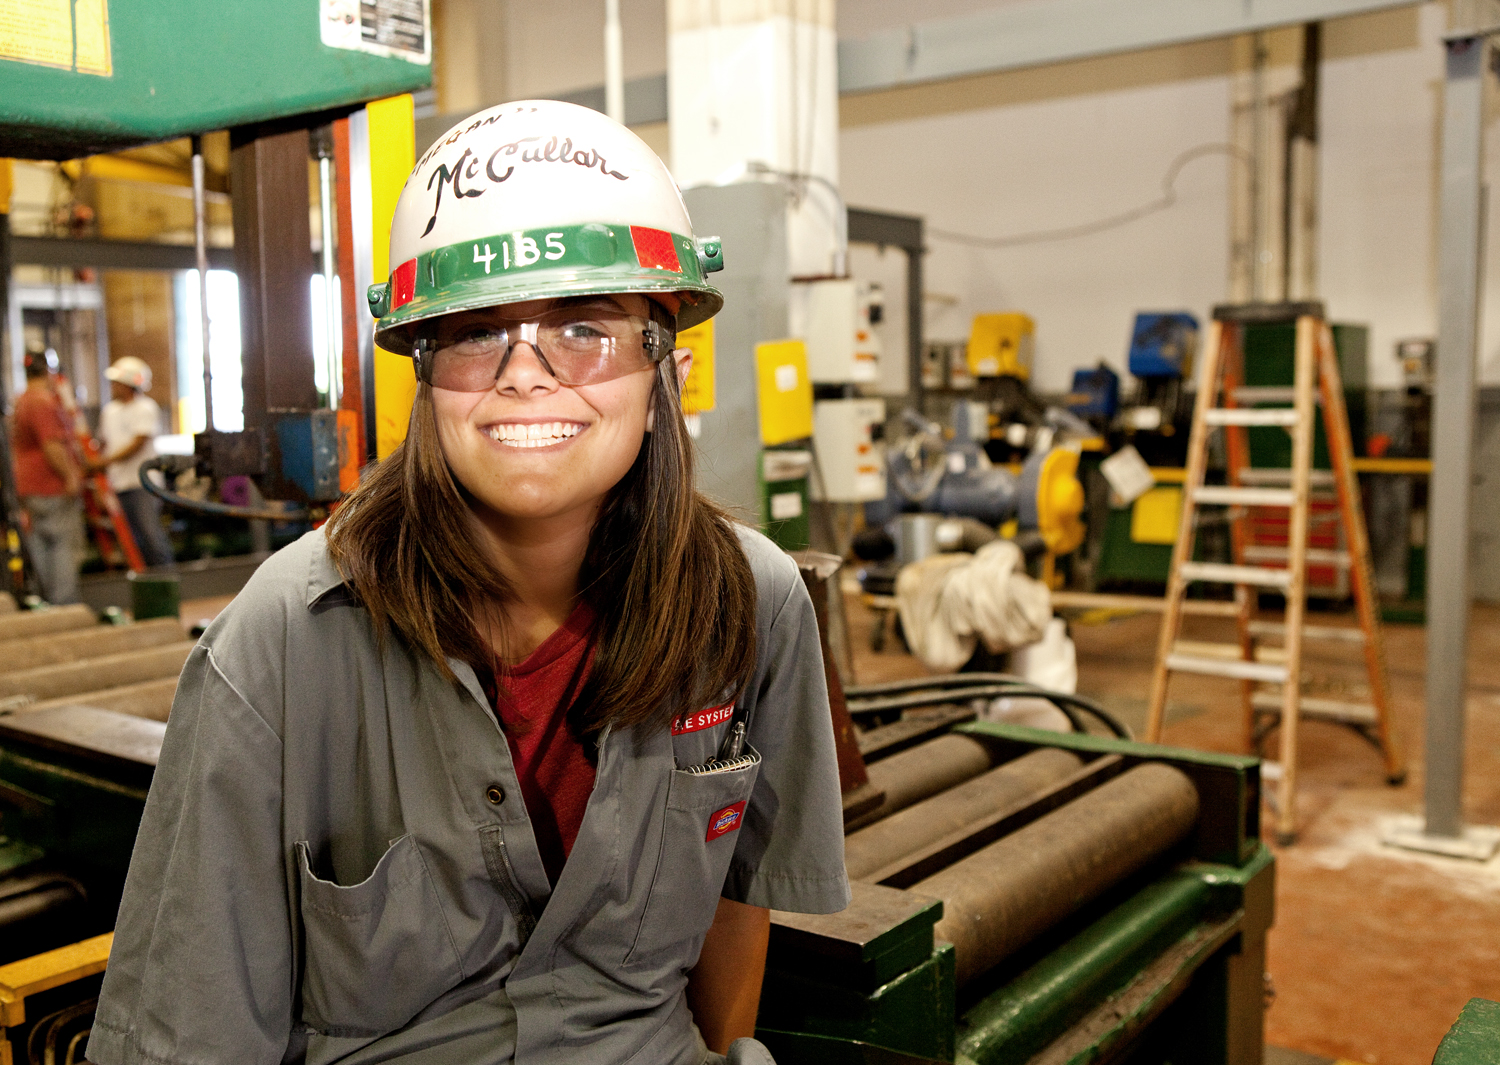 BAE Systems Ship Repair apprentice